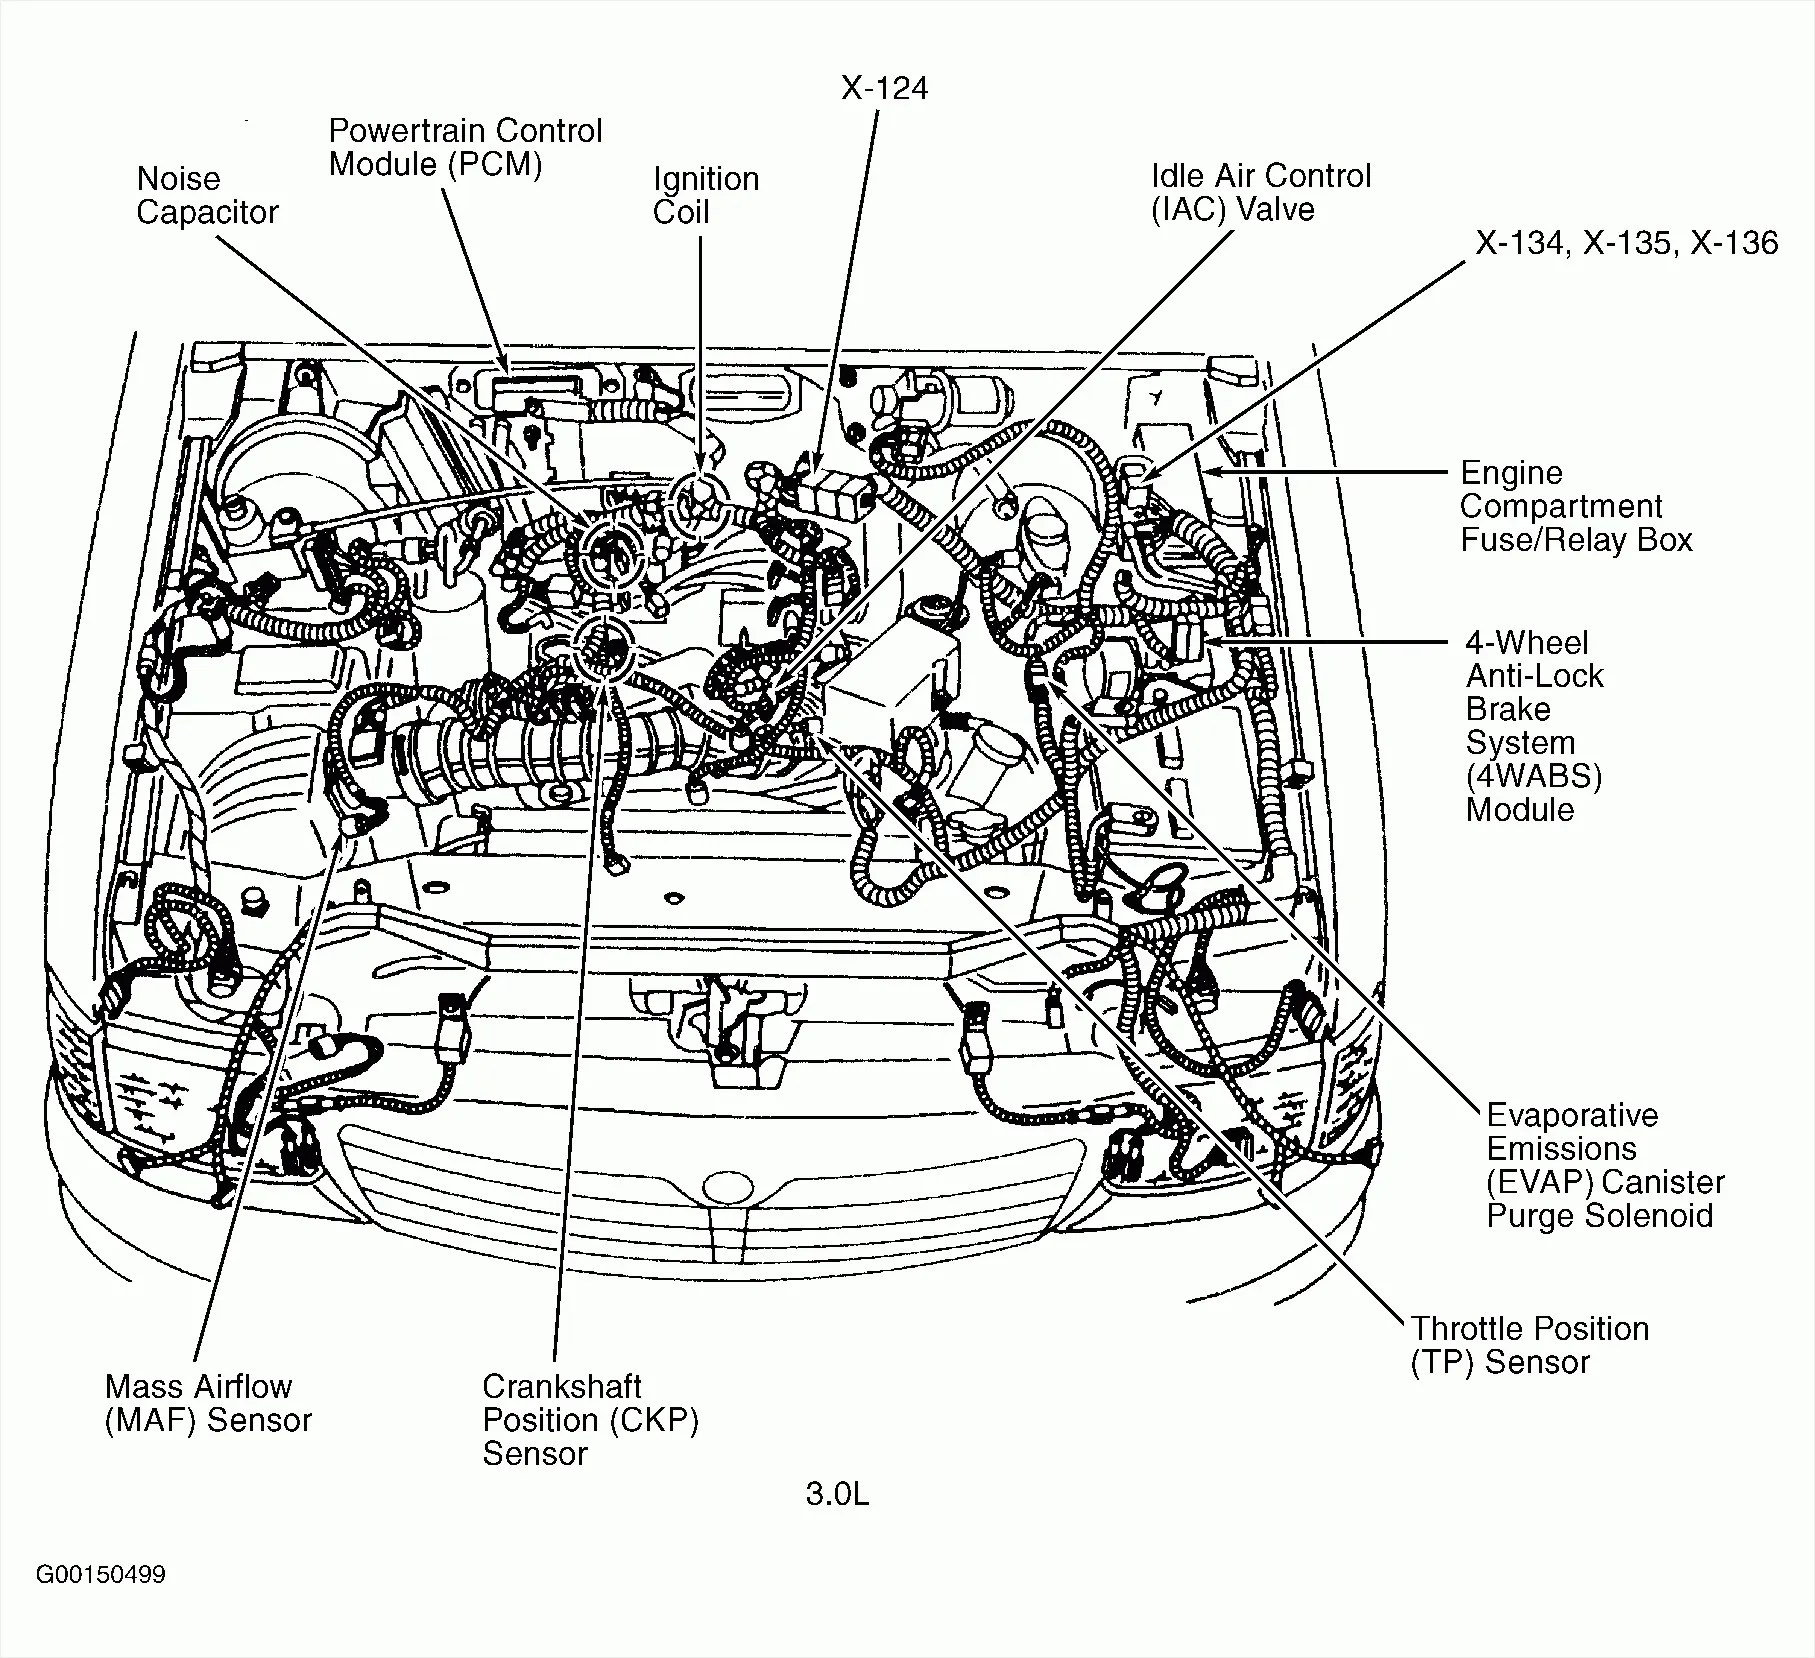 hight resolution of 2008 audi a6 engine bay diagram wiring database library rh 31 arteciock de e46 engine bay diagram engine bay diagram